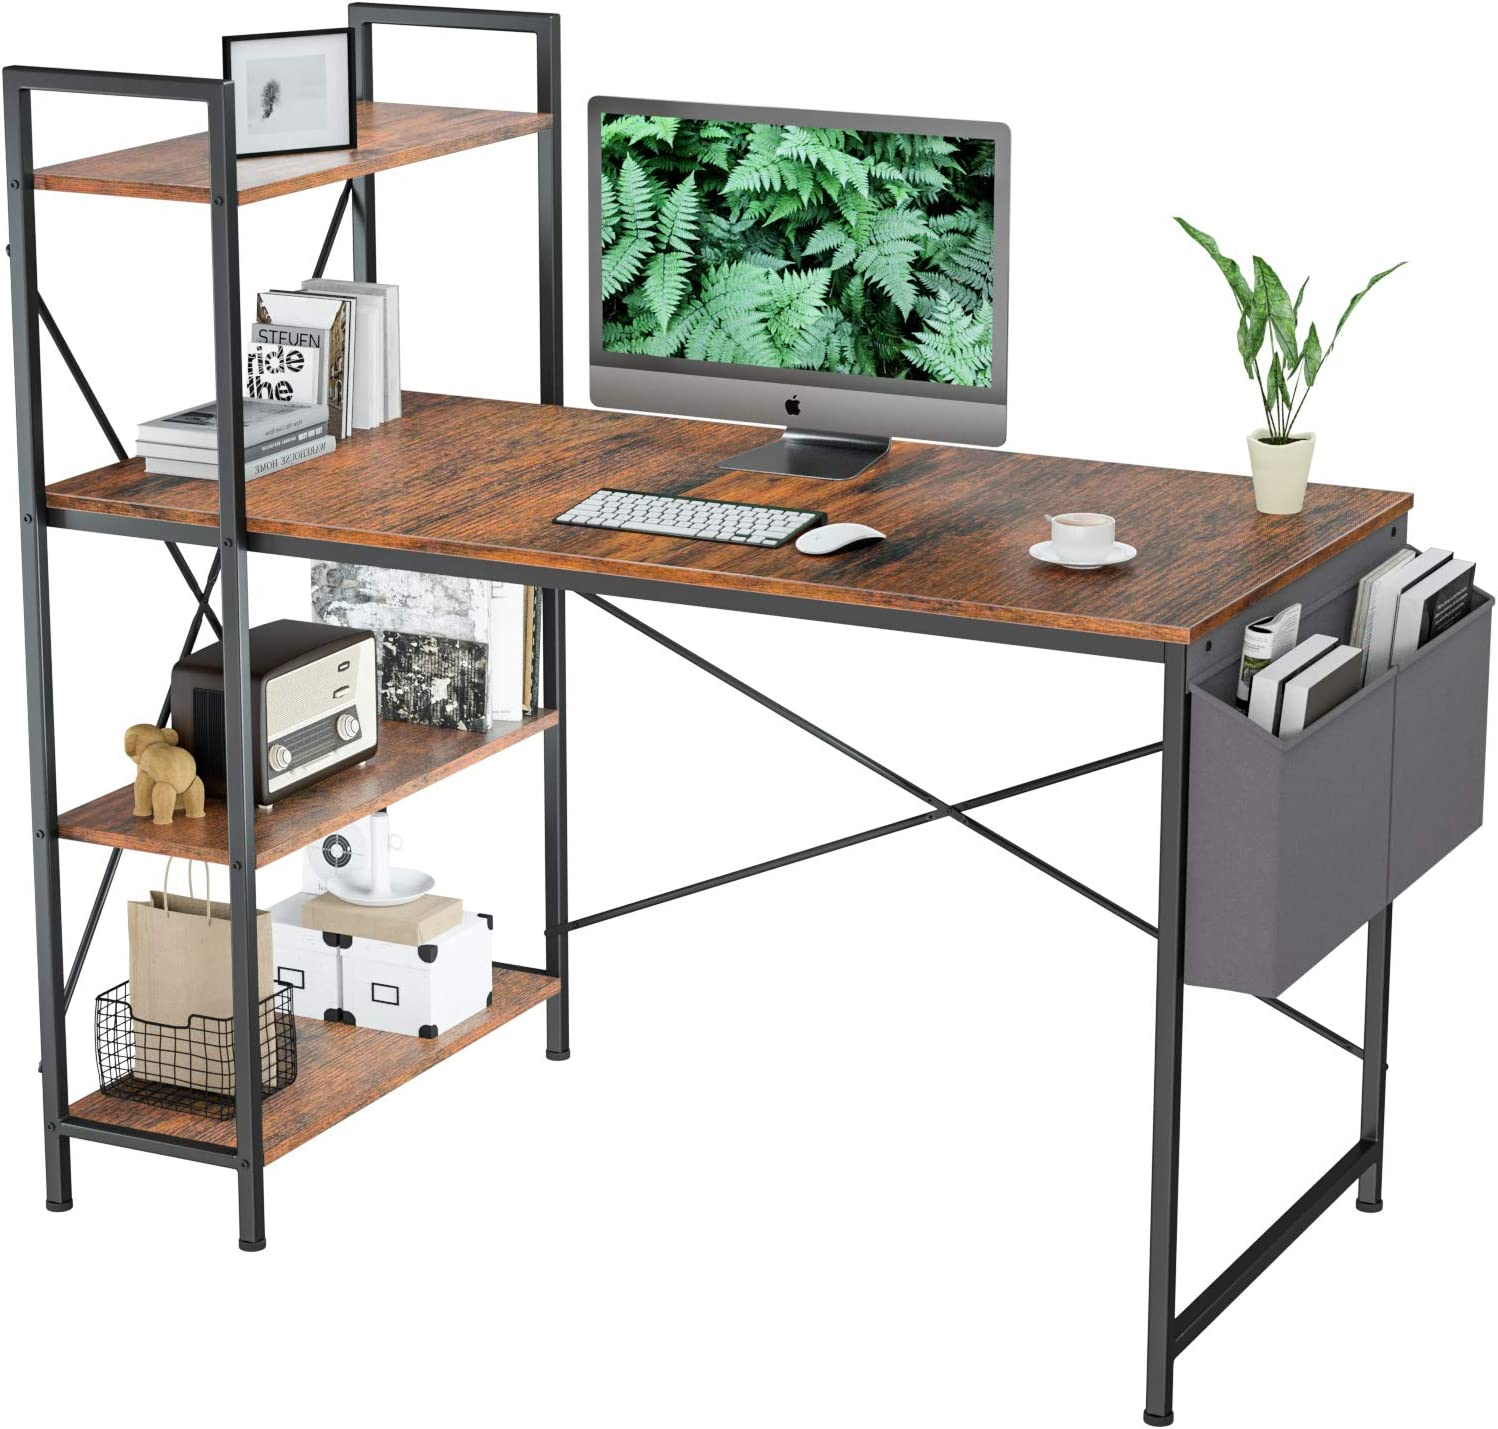 Computer Desk with Shelves 47 Inch - Aludest Reversible Writing Desk with Adjustable Storage Bookshelf Home Office Desk Study Table Work Desk with Shelves Office Bookshelf Tower Desk Easy Assemble